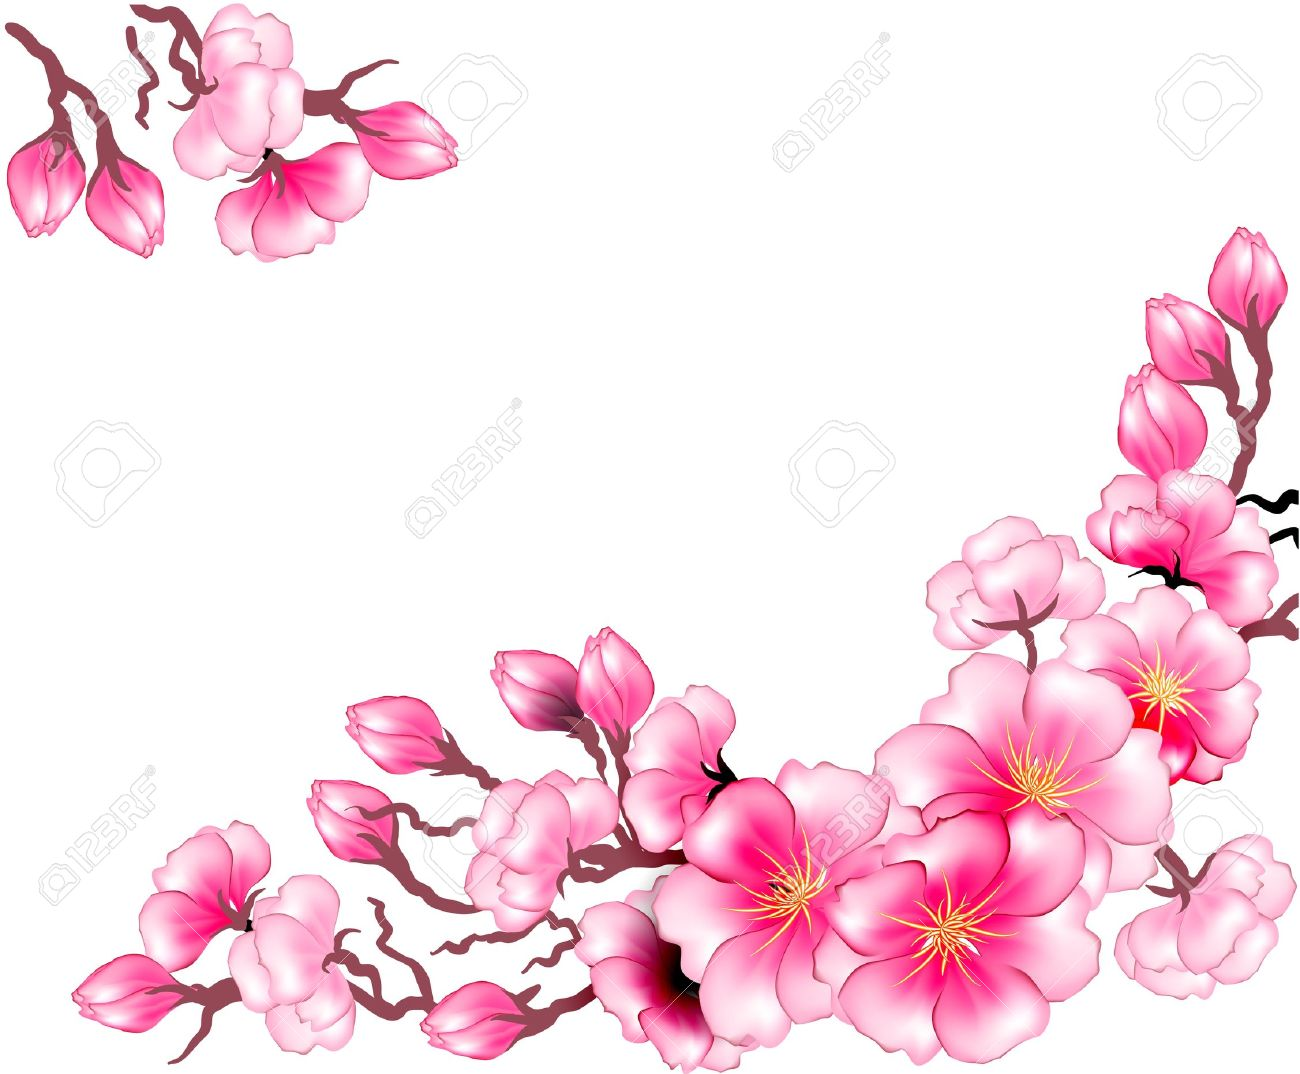 Sakura Branch Flowers Design Template Royalty Free Cliparts ...